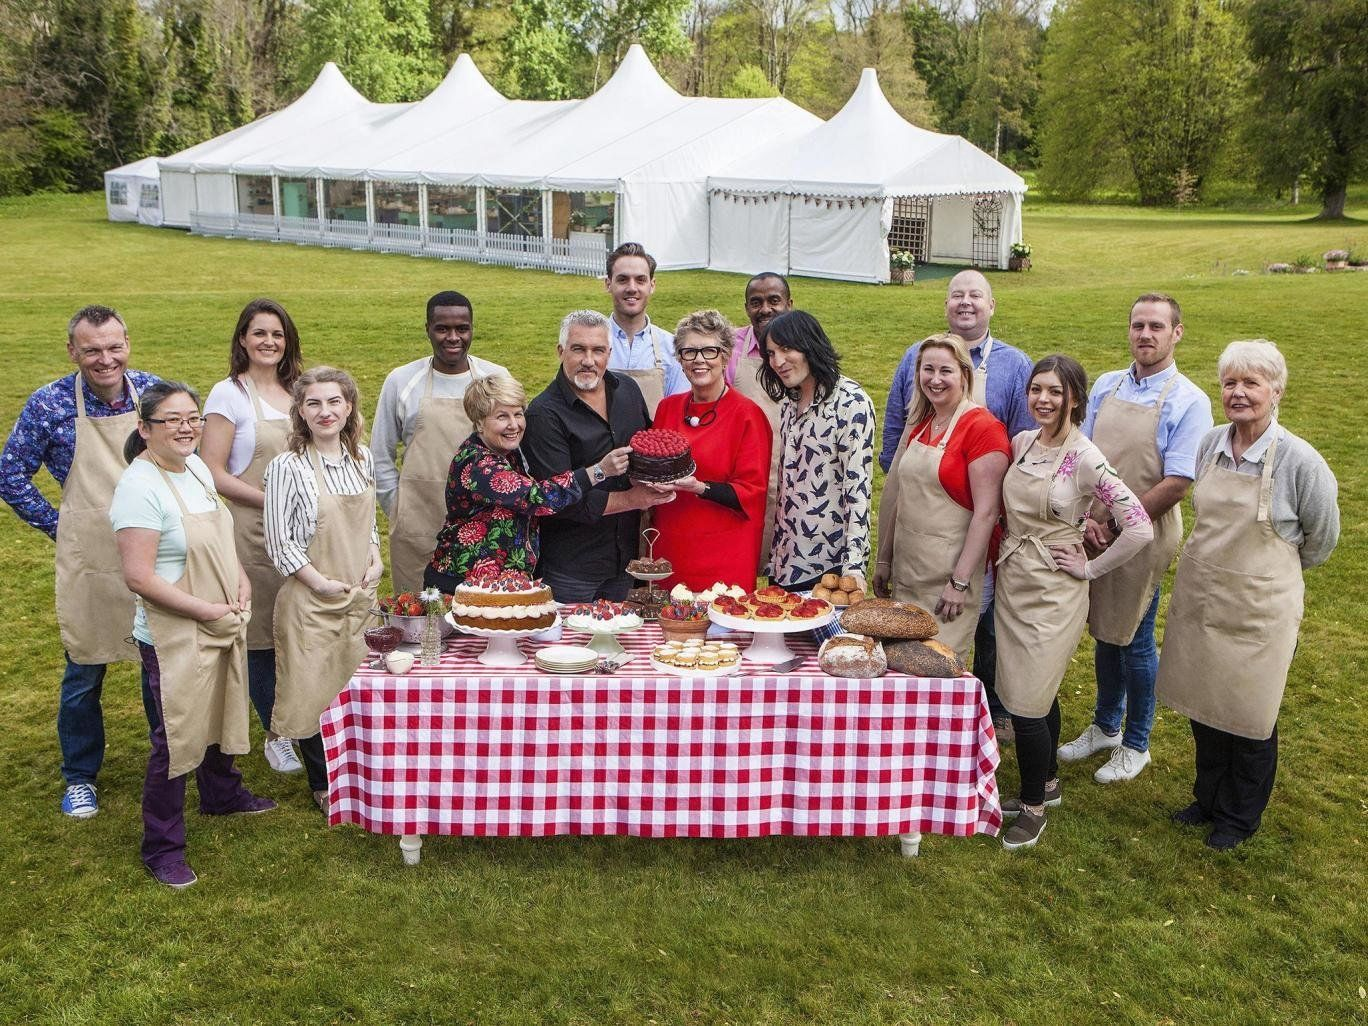 Channel 4 Reveals Hopes For 'Great British Bake Off' Viewing Figures